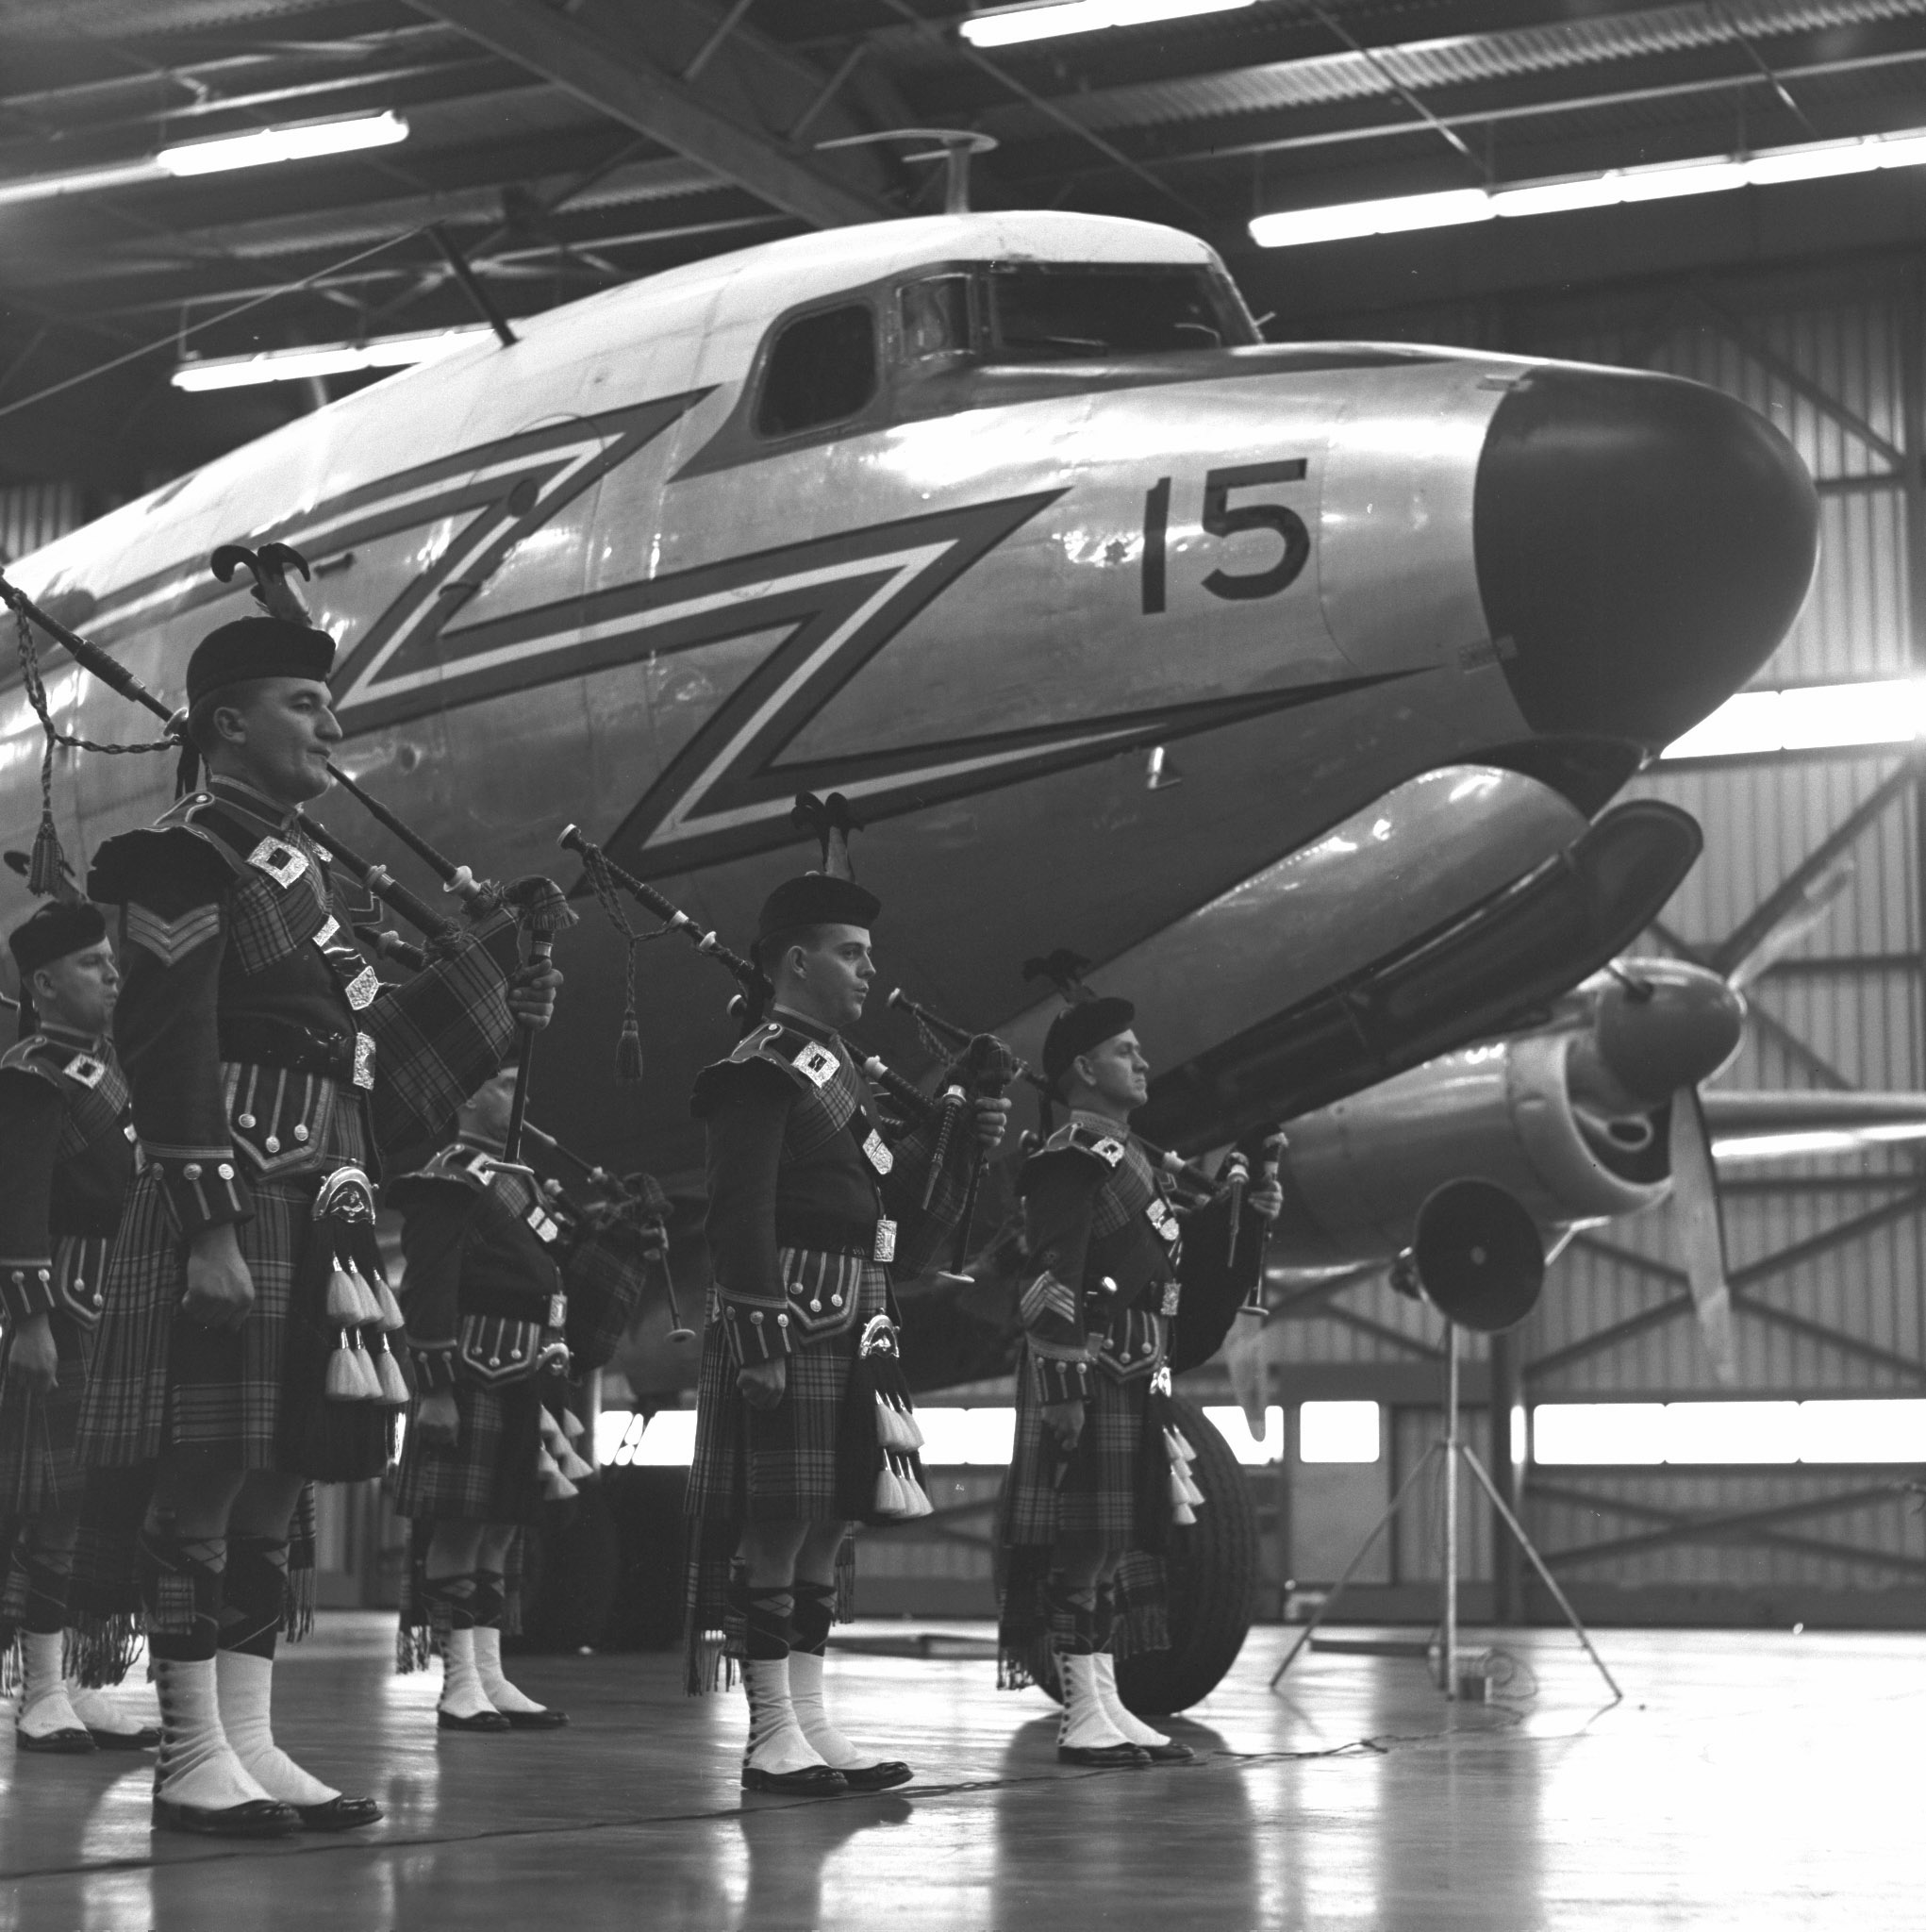 The RCAF Pipe Band stands in front of the RCAF's last North Star during the aircraft's retirement ceremony.